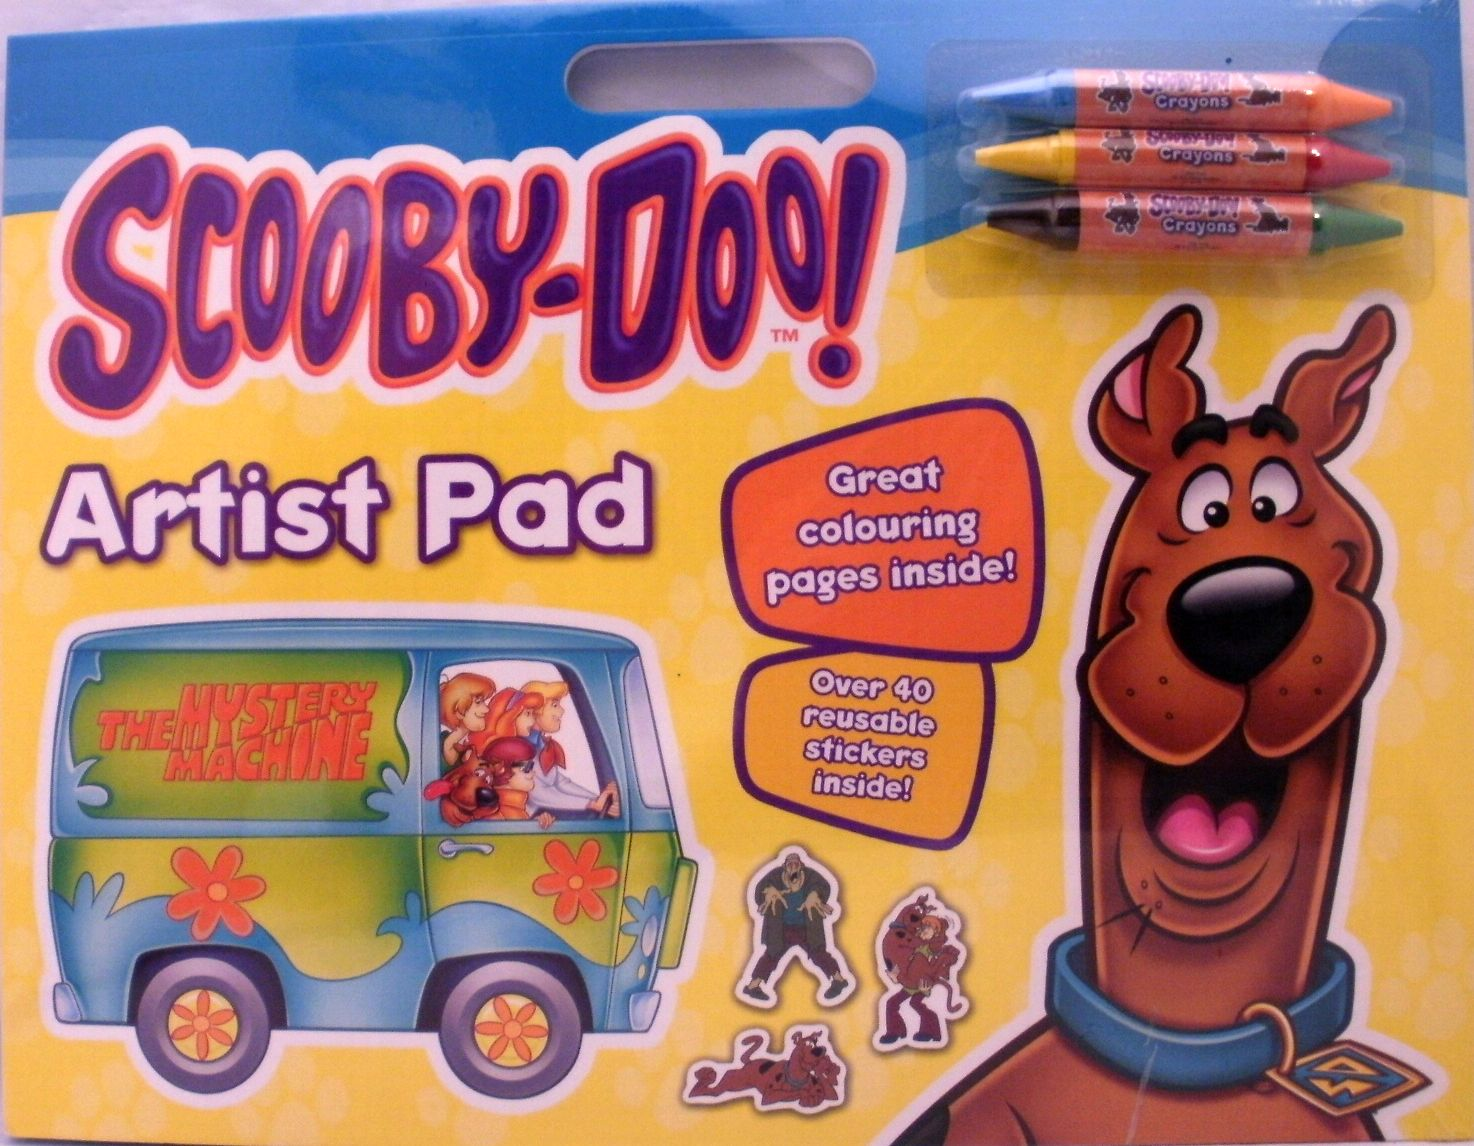 Scooby Doo A3 Giant Artist Pad